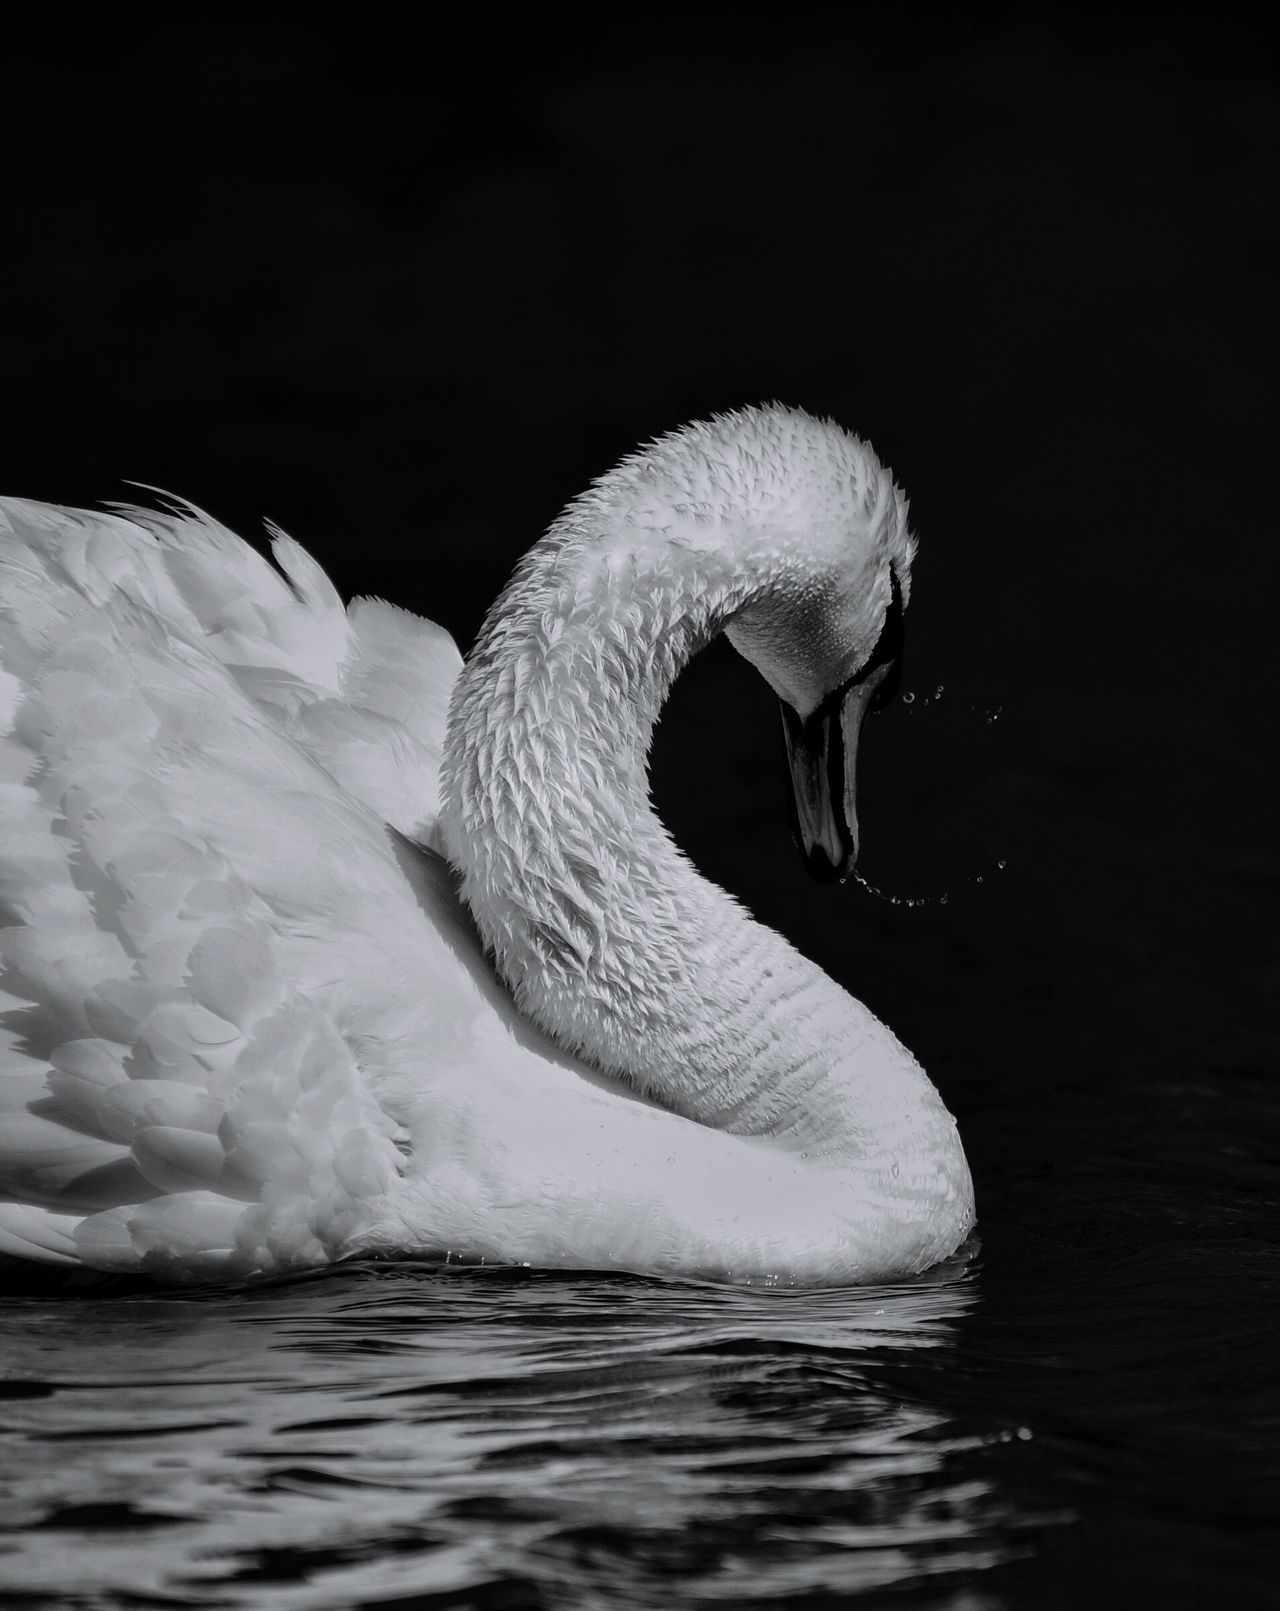 Bird Swimming One Animal Animals In The Wild Swan Animal Wildlife Animal Themes No People Water Black Background Nature Outdoors Day Blackandwhite Black&white Texas Photographer Black And White Collection! Animals In The Wild EyeEm Gallery Black And White Collection  Eyeemphotography Blackandwhite Photography